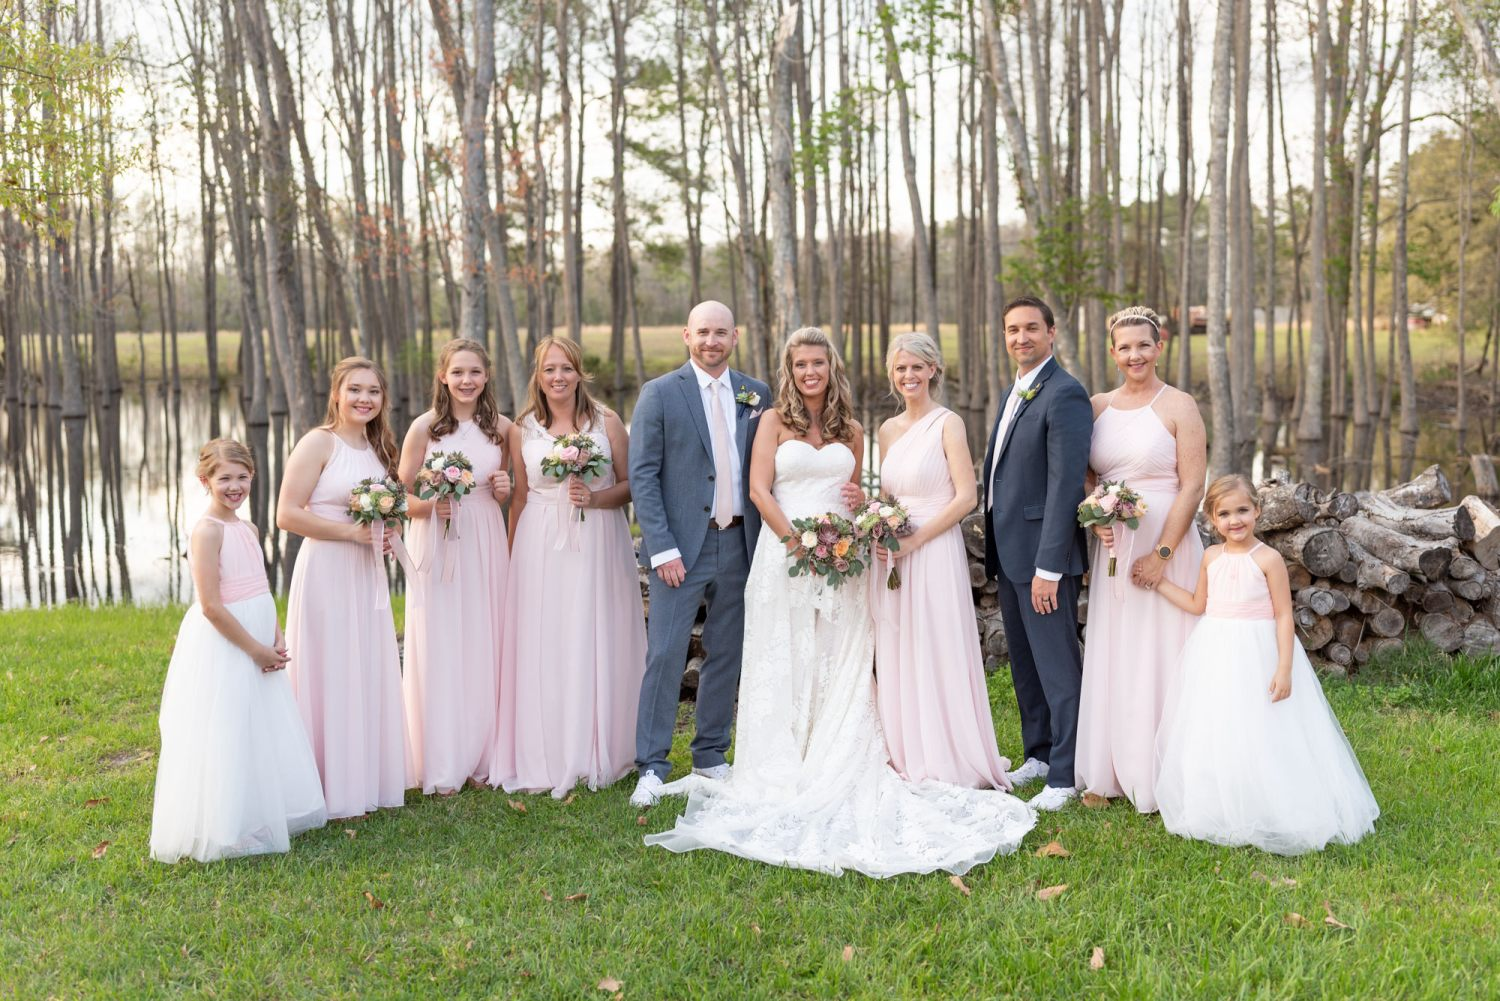 Bridesmaids with just one groomsman  - Wildhorse at Parker Farms